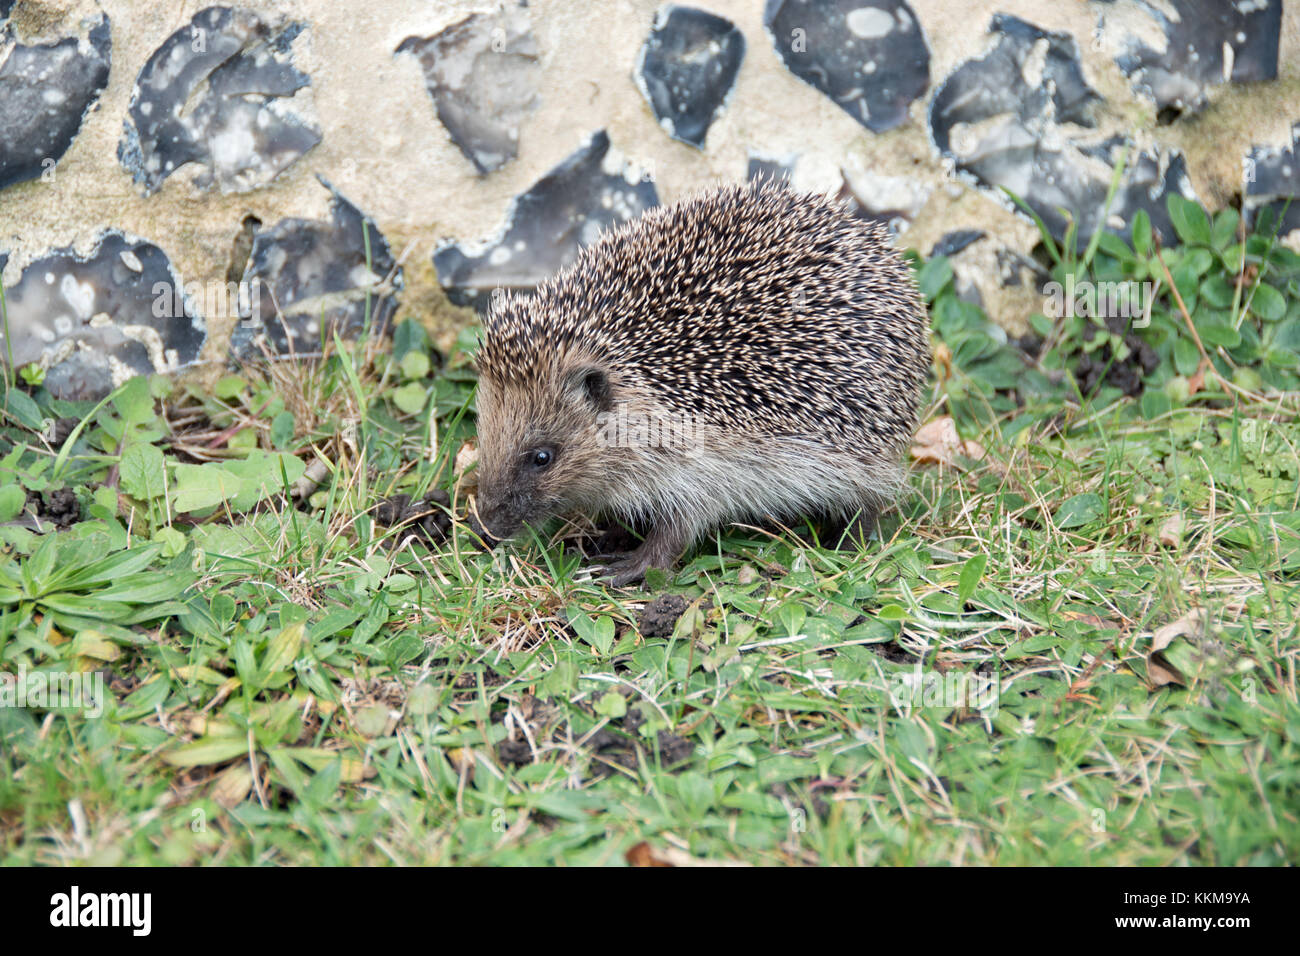 A hedgehog foraging in a churchyard - Stock Image